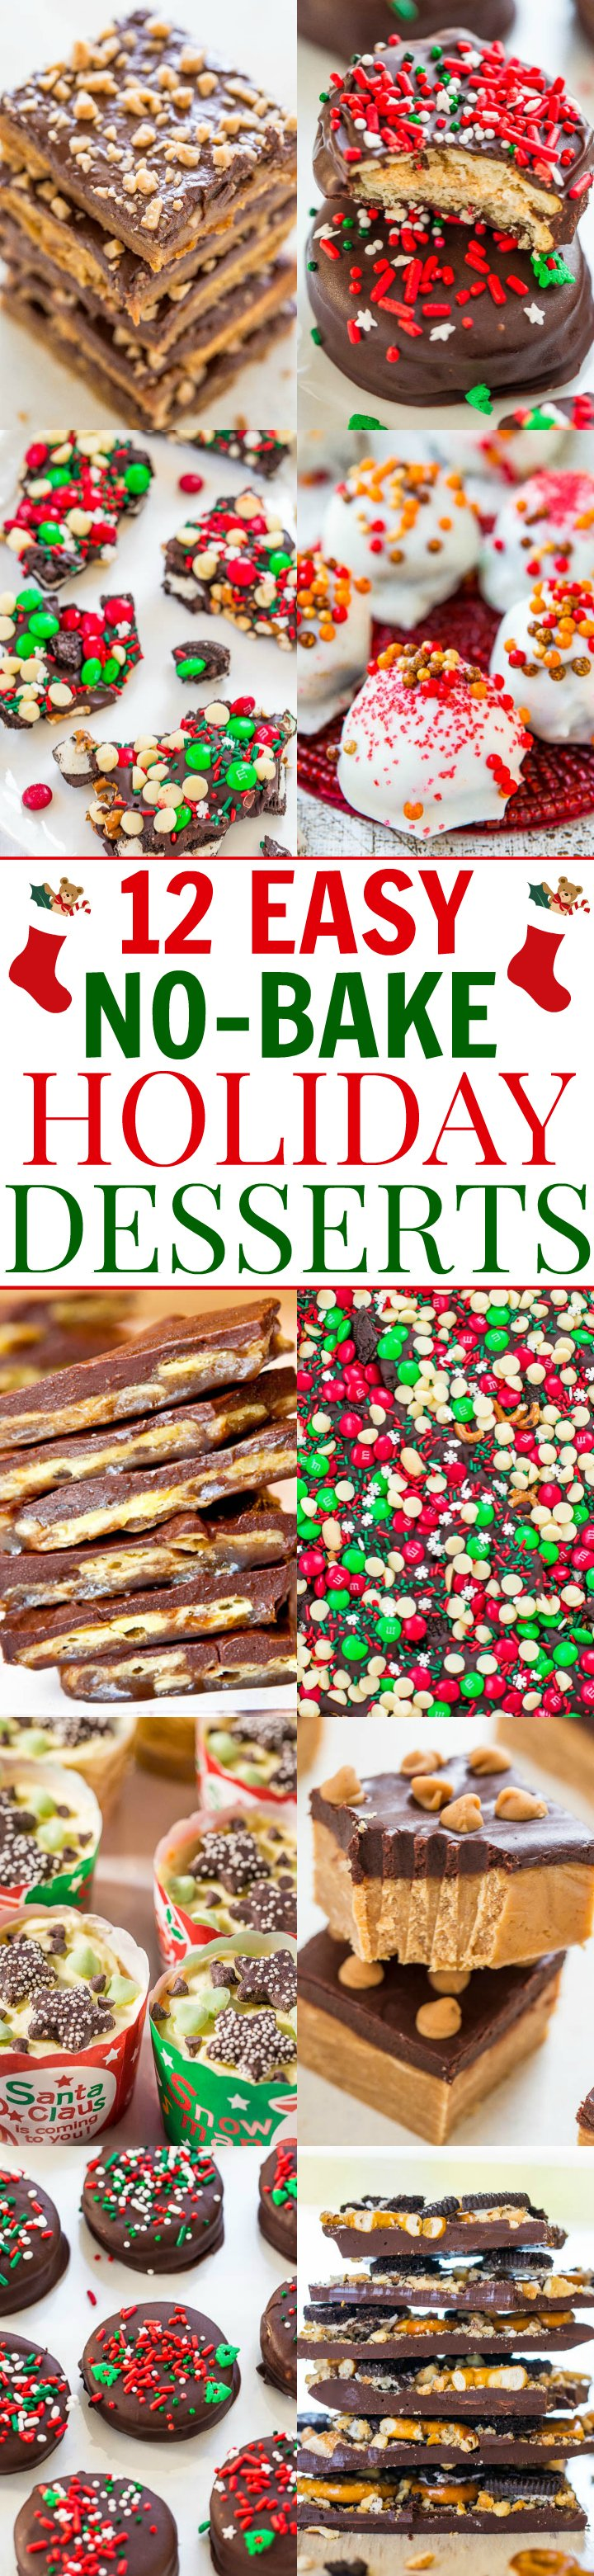 12 Easy No-Bake Holiday Desserts - Averie Cooks